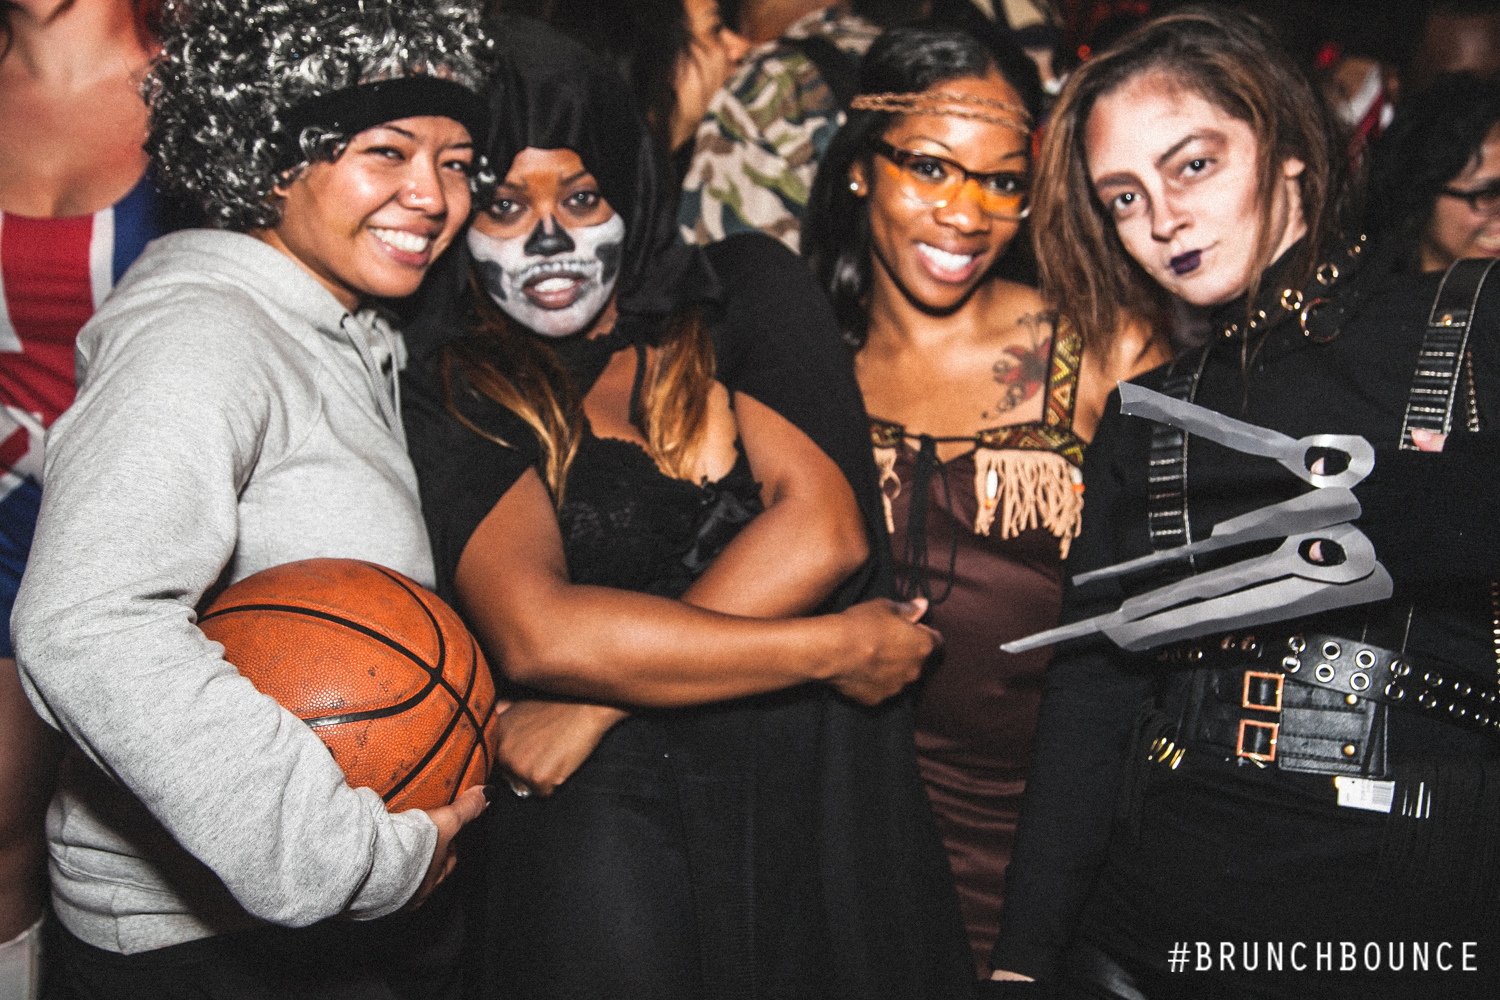 brunch-bounce-x-adidas-originals-halloween-103115_22755107735_o.jpg